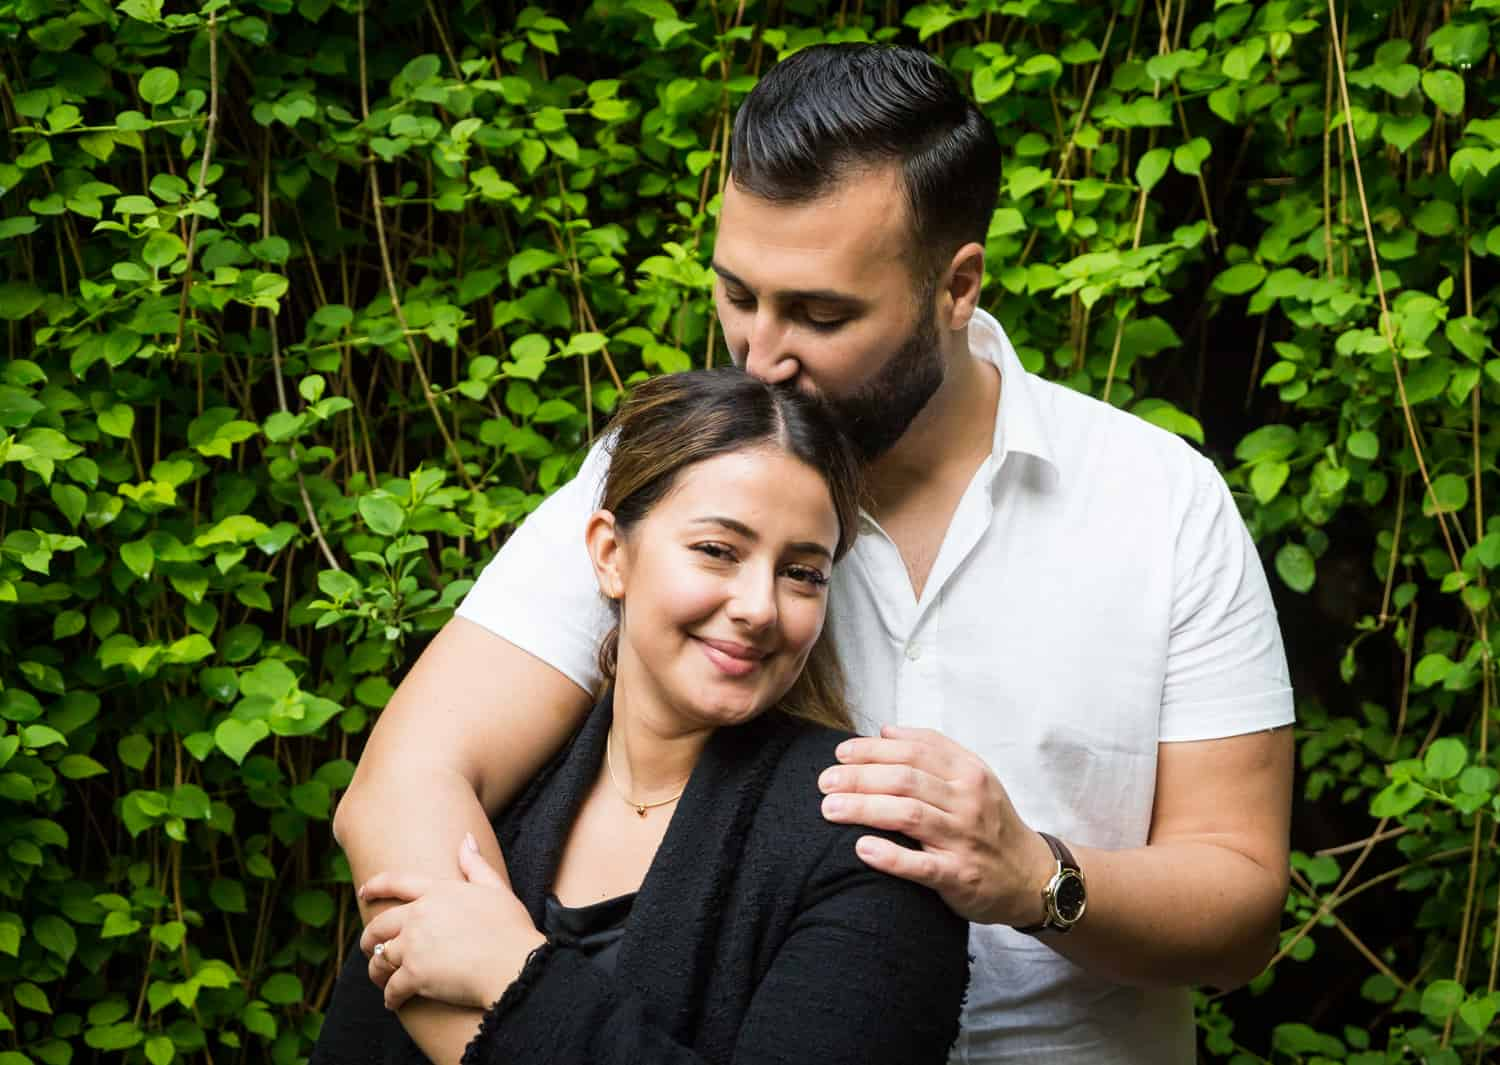 Man kissing woman's head in front of ivy-covered wall